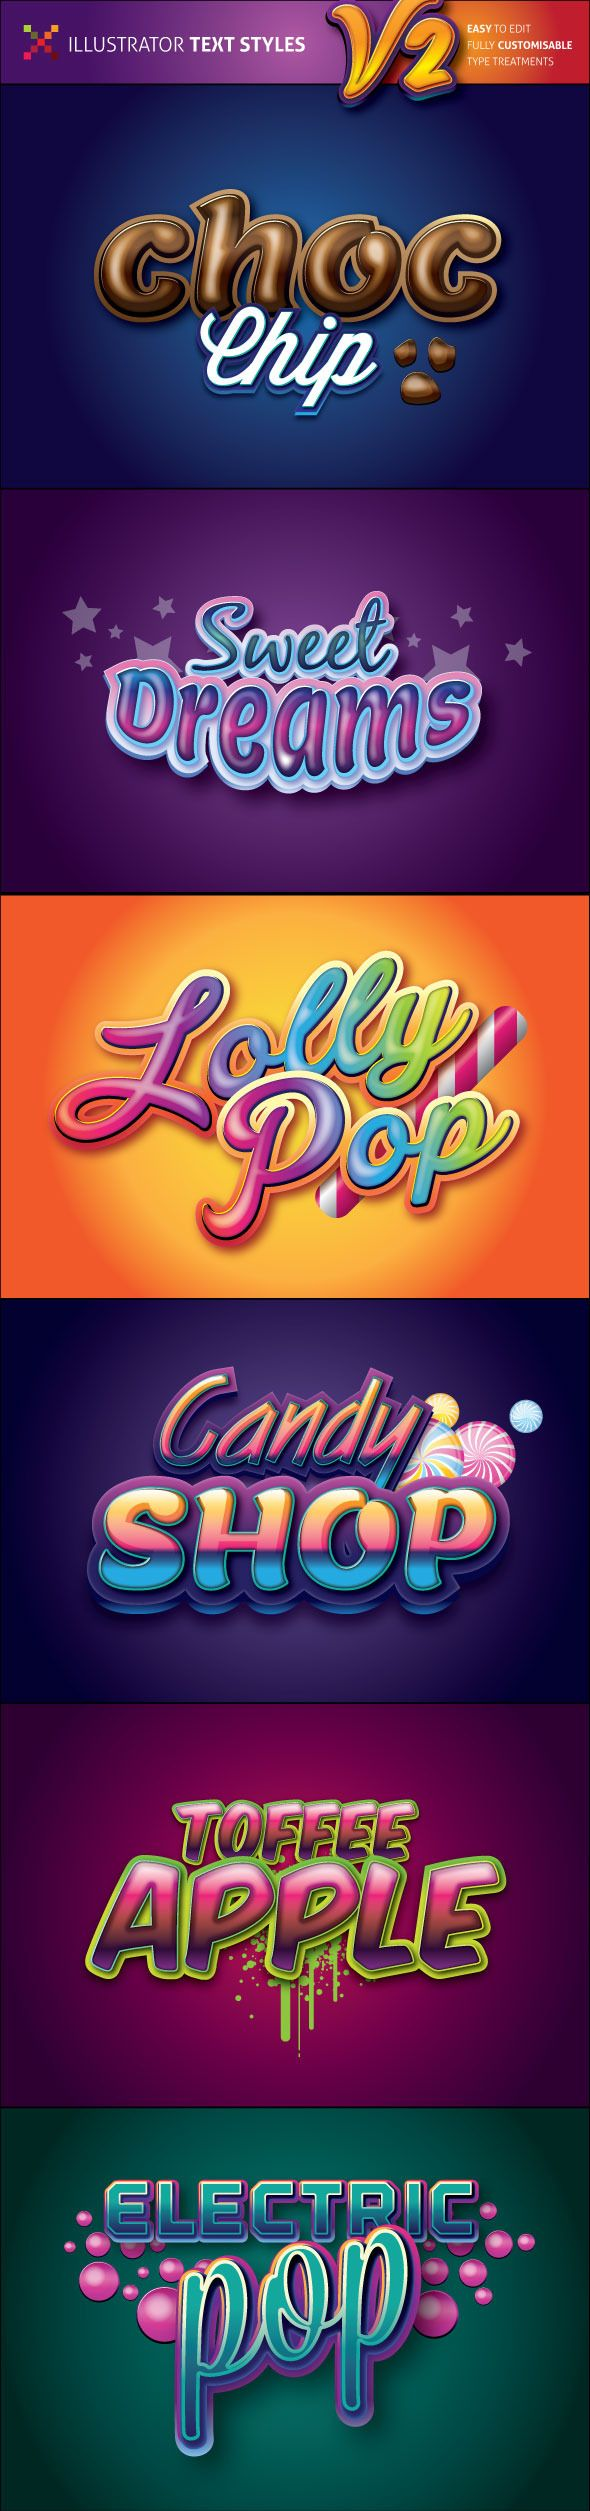 Sweet Illustrator Graphic Styles V2 (AI Illustrator, CMYK, CS6, 3d, candy, cartoon, confectionary, fun, illustrator, illustrator graphic styles, label, logo, lollies, styles, sugar, sweets, text style, title, type treatment, typography, vector)